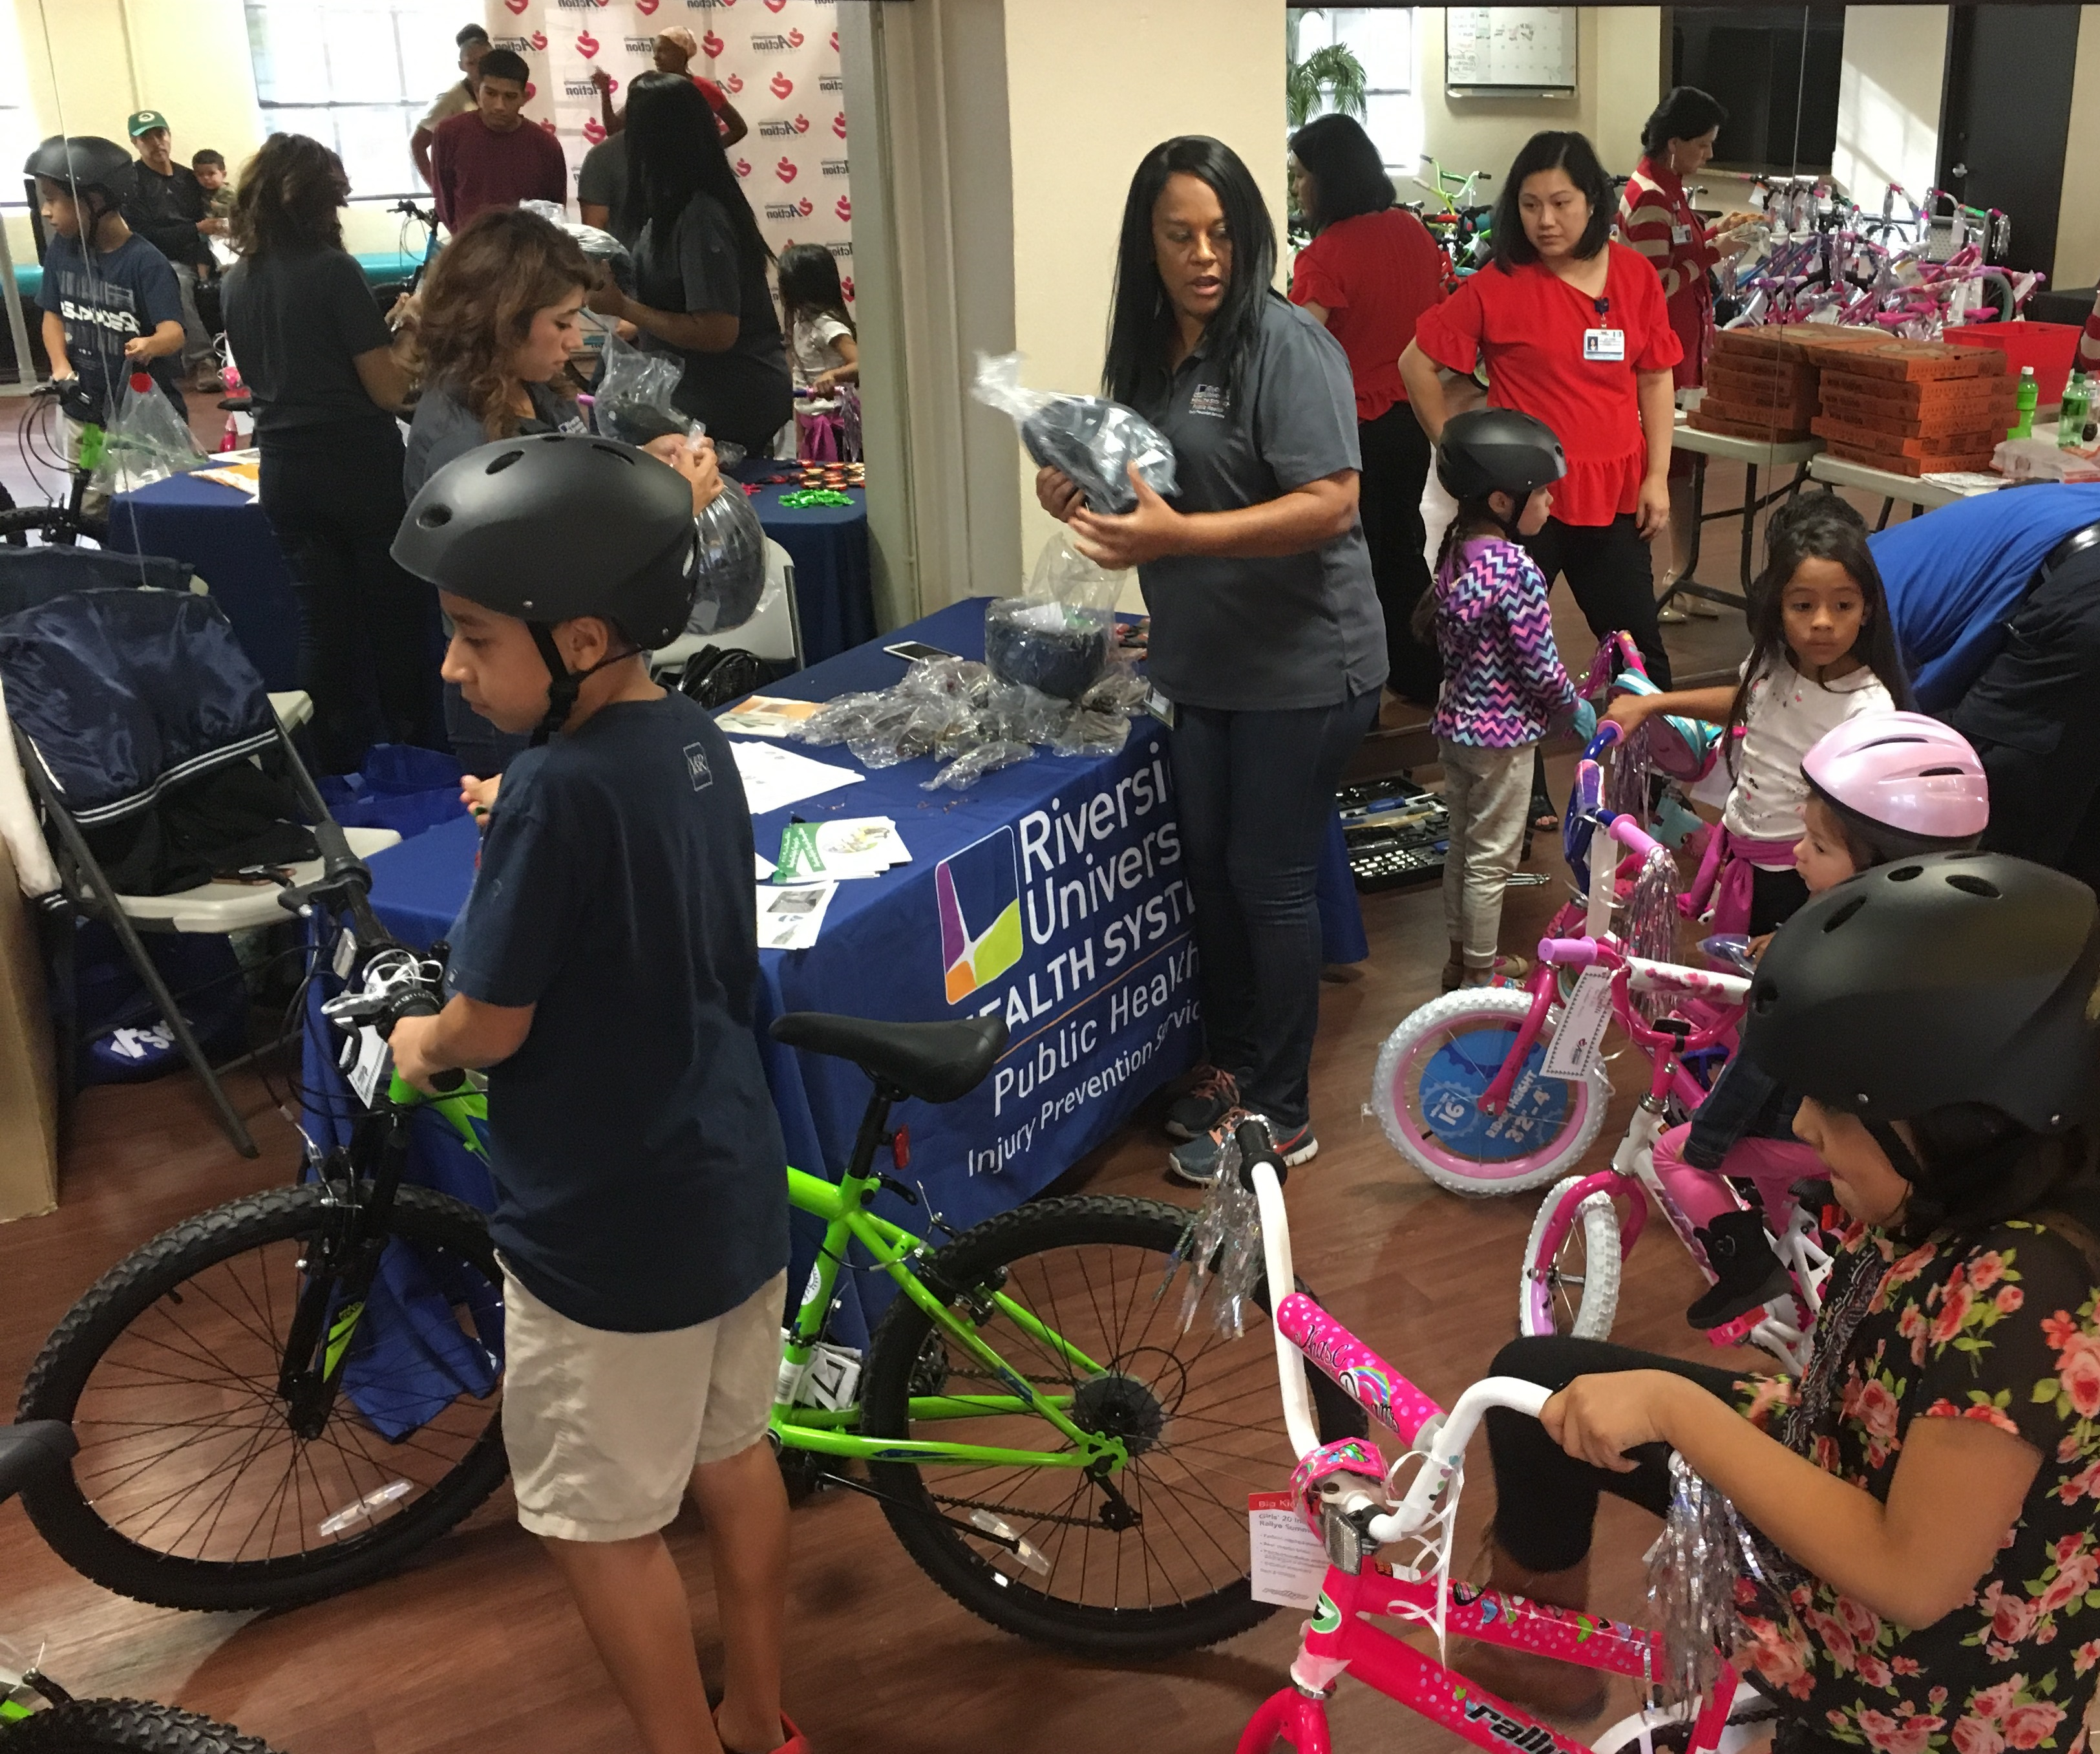 Children received free bicycles as Christmas presents on Tuesday, December 19 at an event in Perris. Riverside County's Community Action Partnership and Bicycles for Children, a non-profit based in Corona, is teaming up this year to provide 75 bicycles to children across the county who met the agencies' gift guidelines.